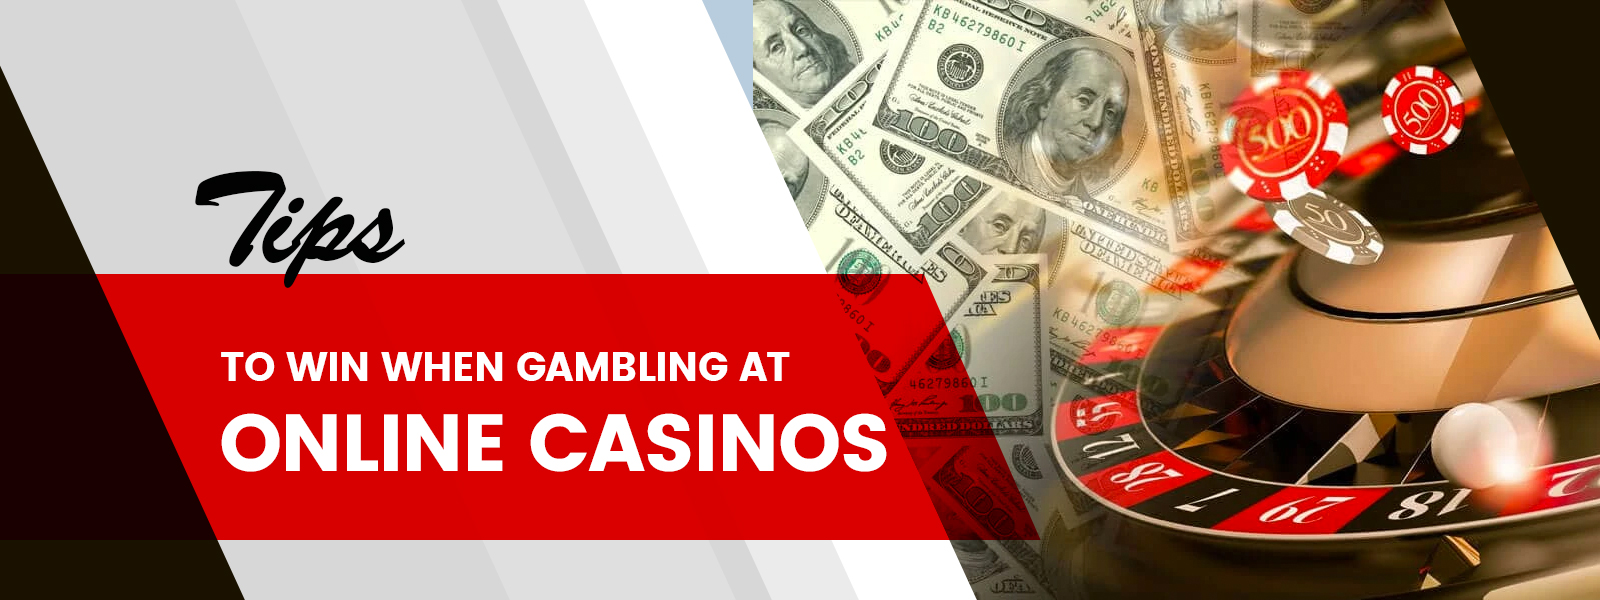 Tips To Win When Gambling At Online Casinos